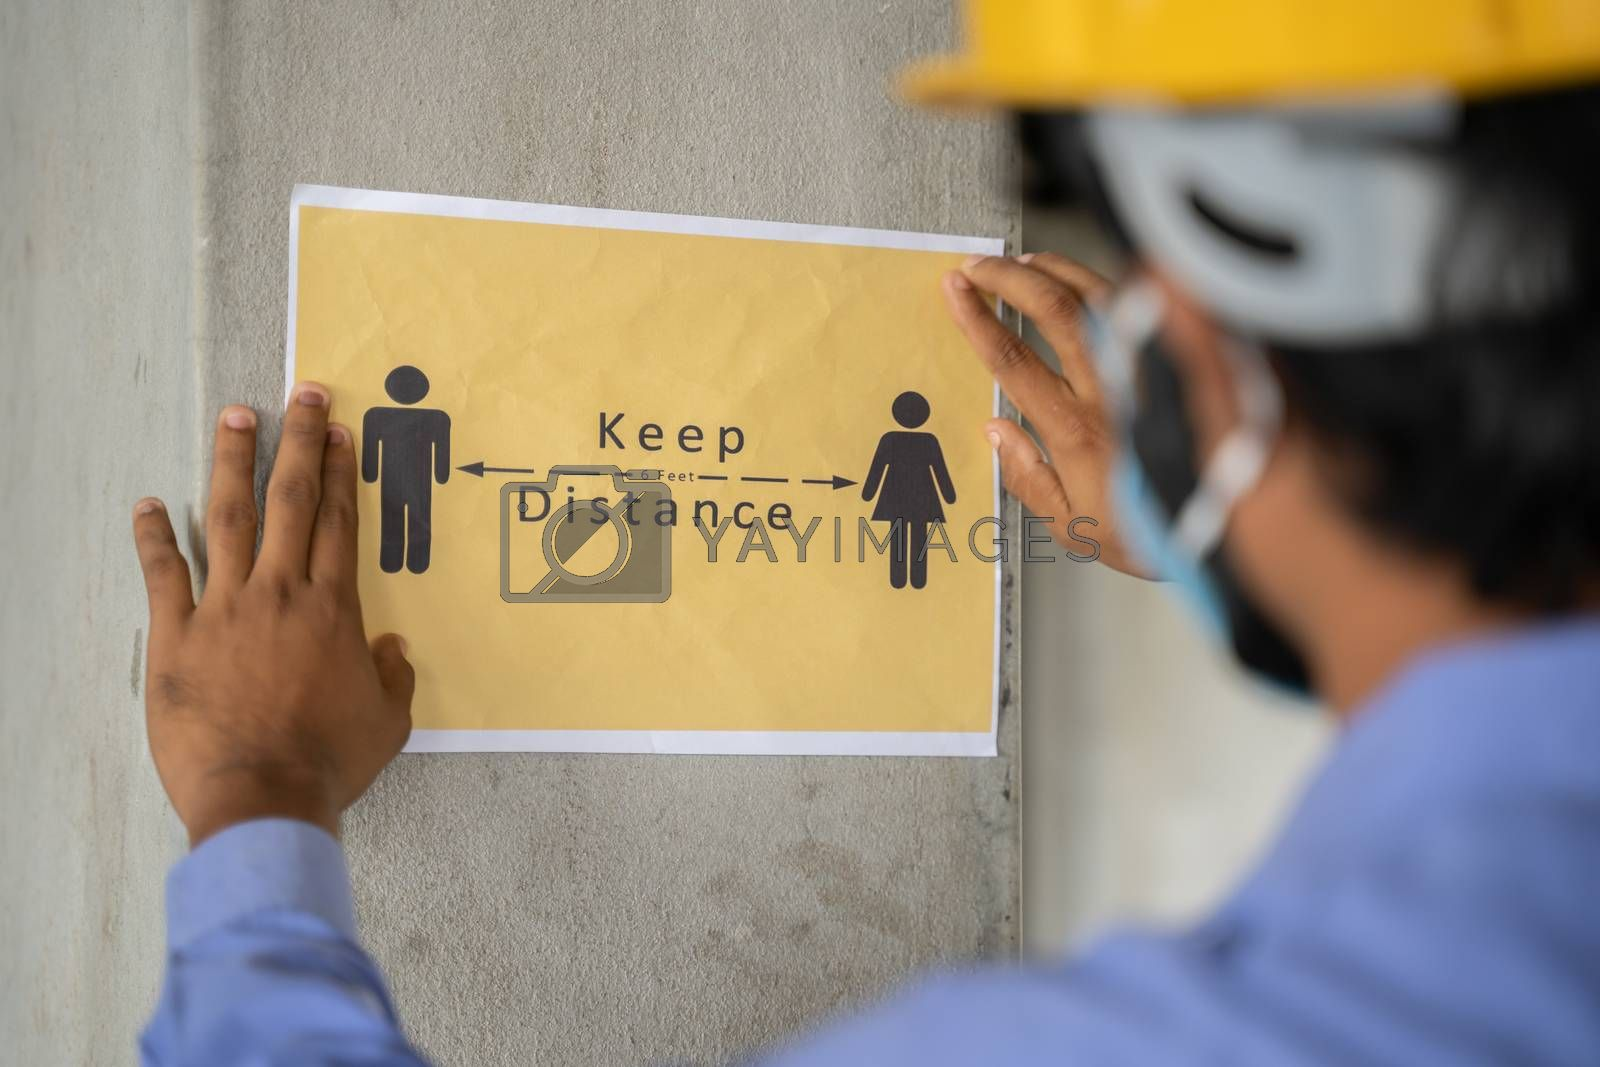 worker pasting Keep 6 feet distance on wall at work place or construction site due to coronavirus or covid-19 pandemic - concept of safety measures, back to work, new normal and protection